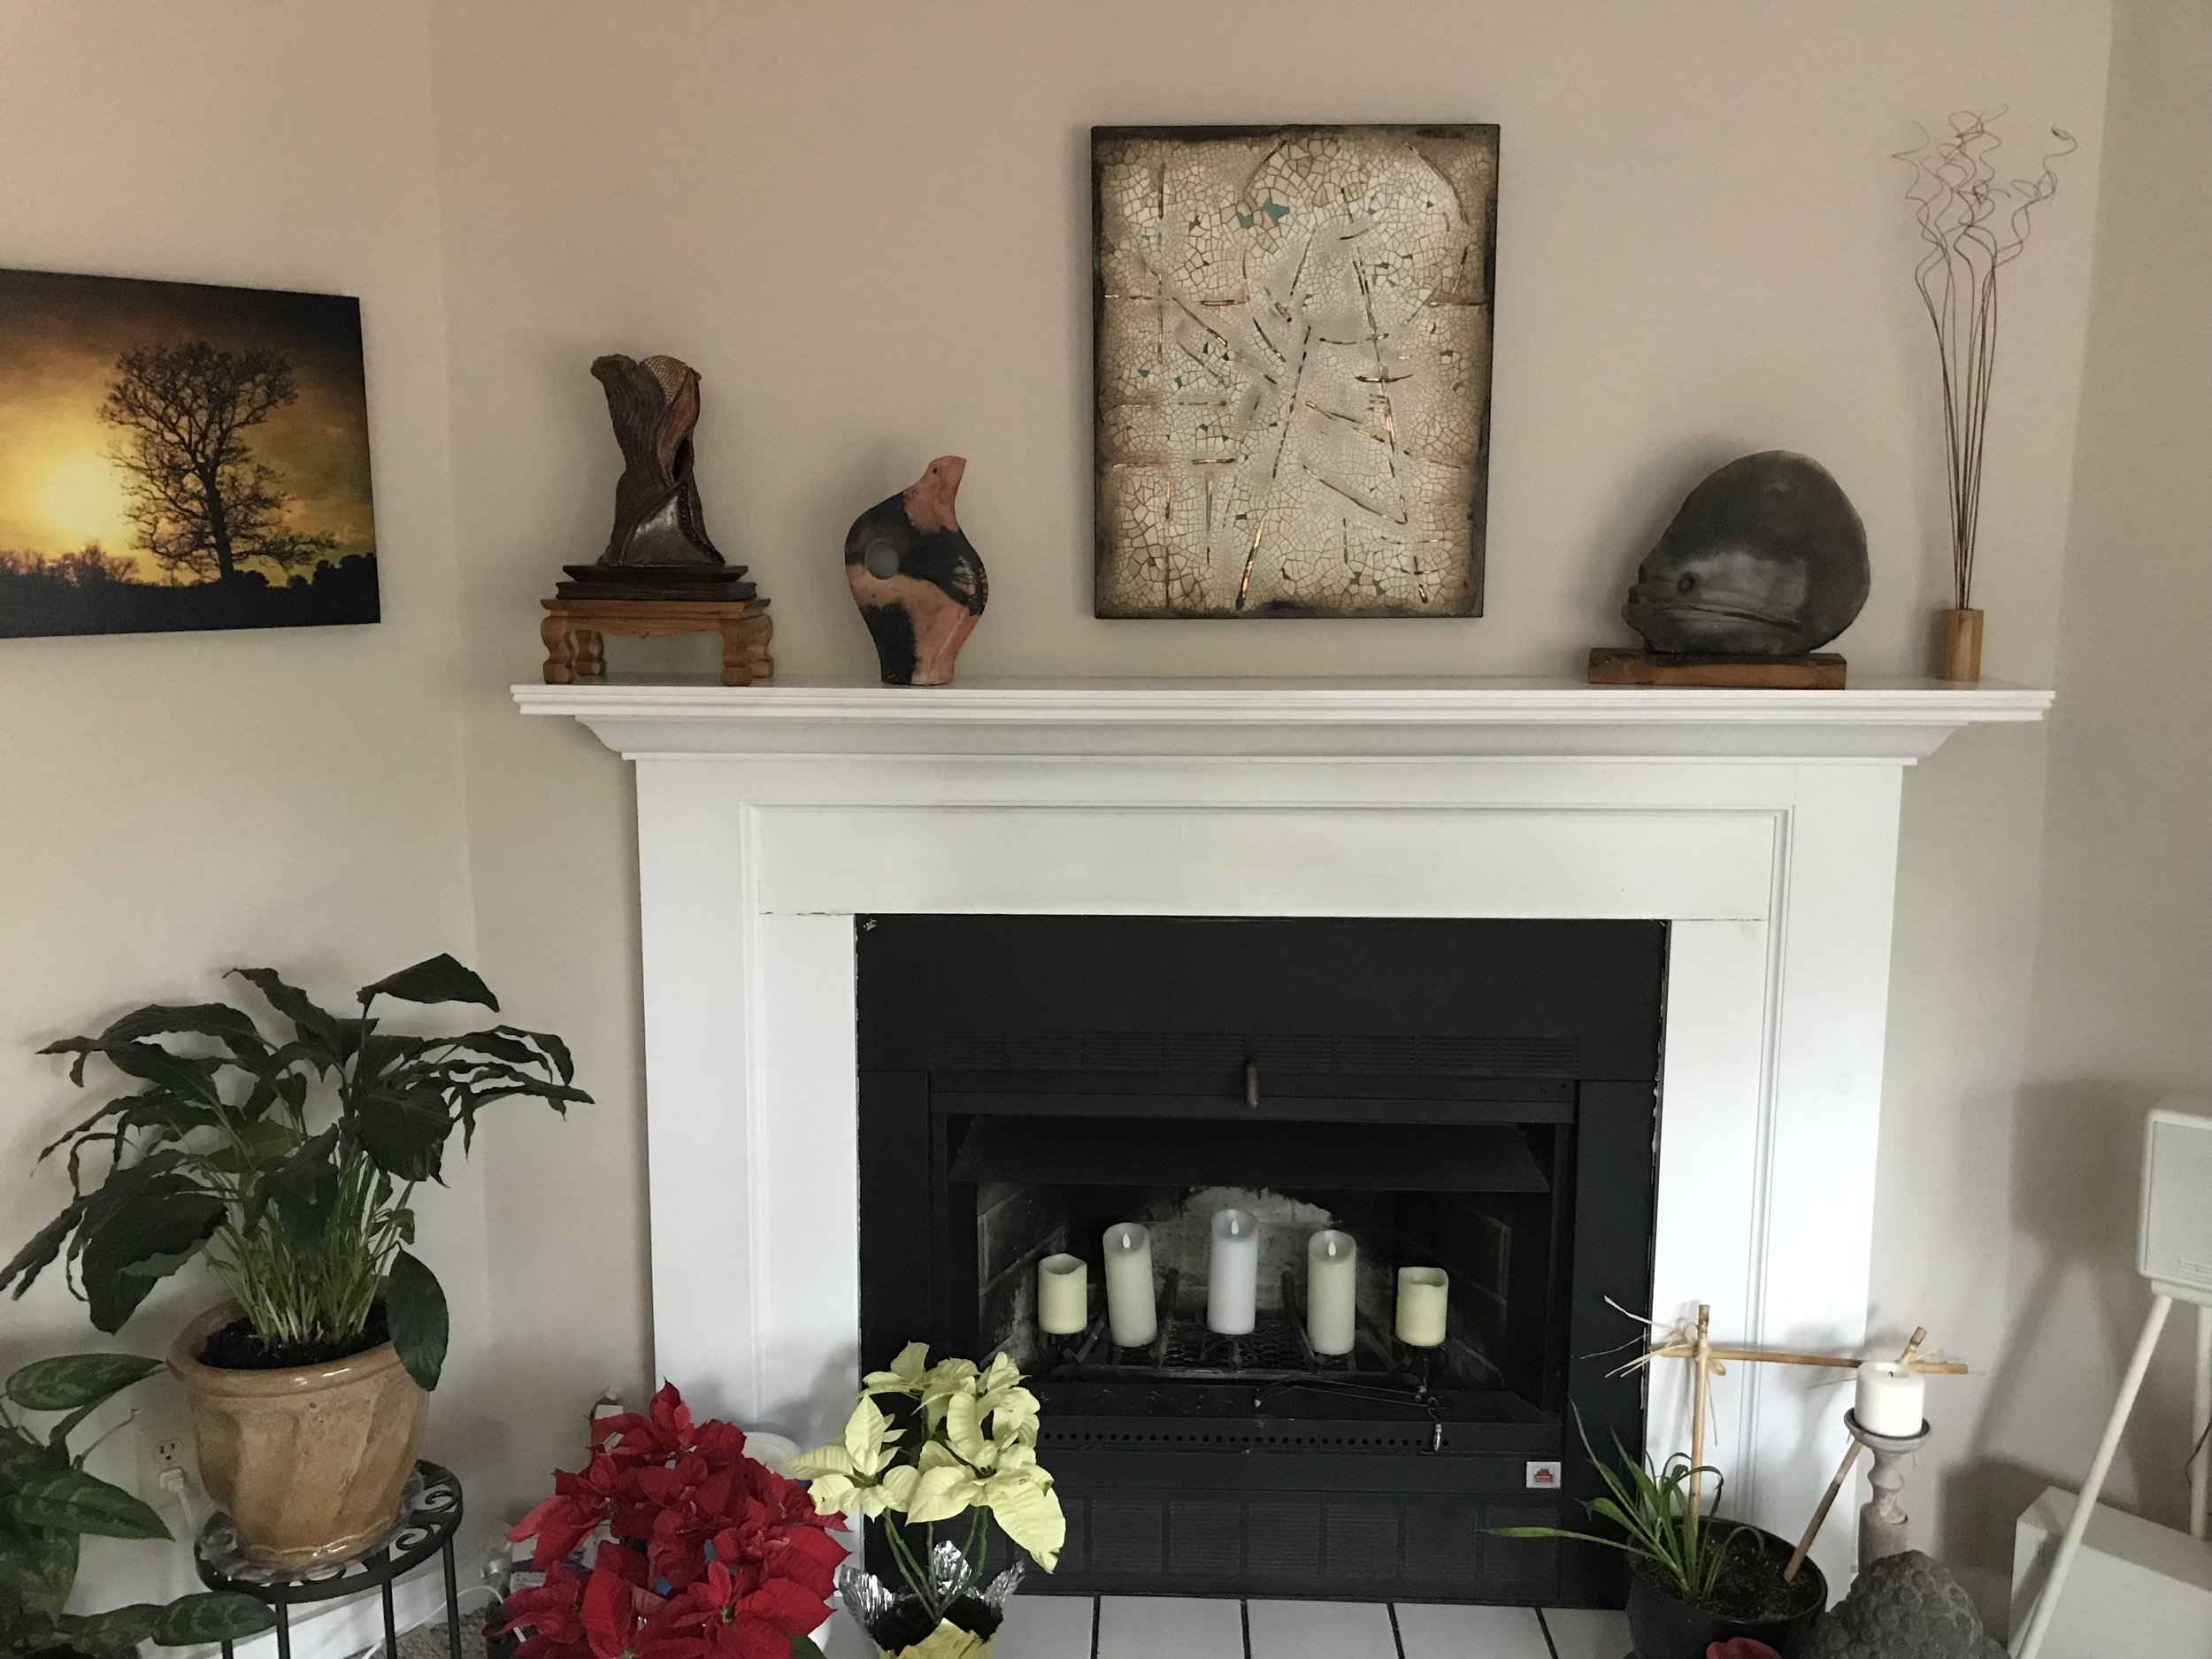 Plaster paining installed in a Cape Cod home